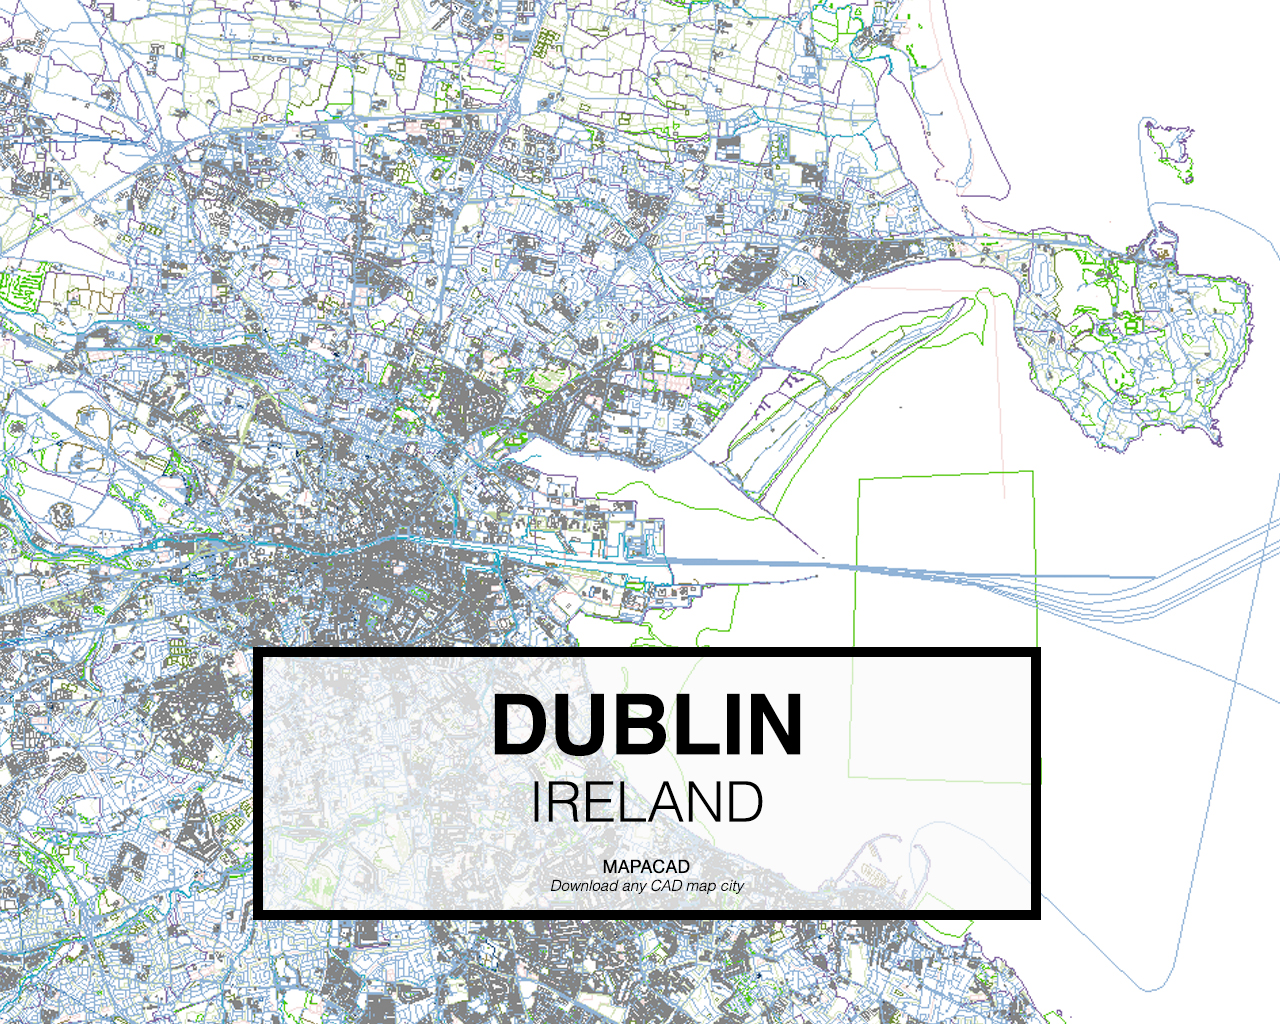 City Map Of Dublin Ireland.Dublin